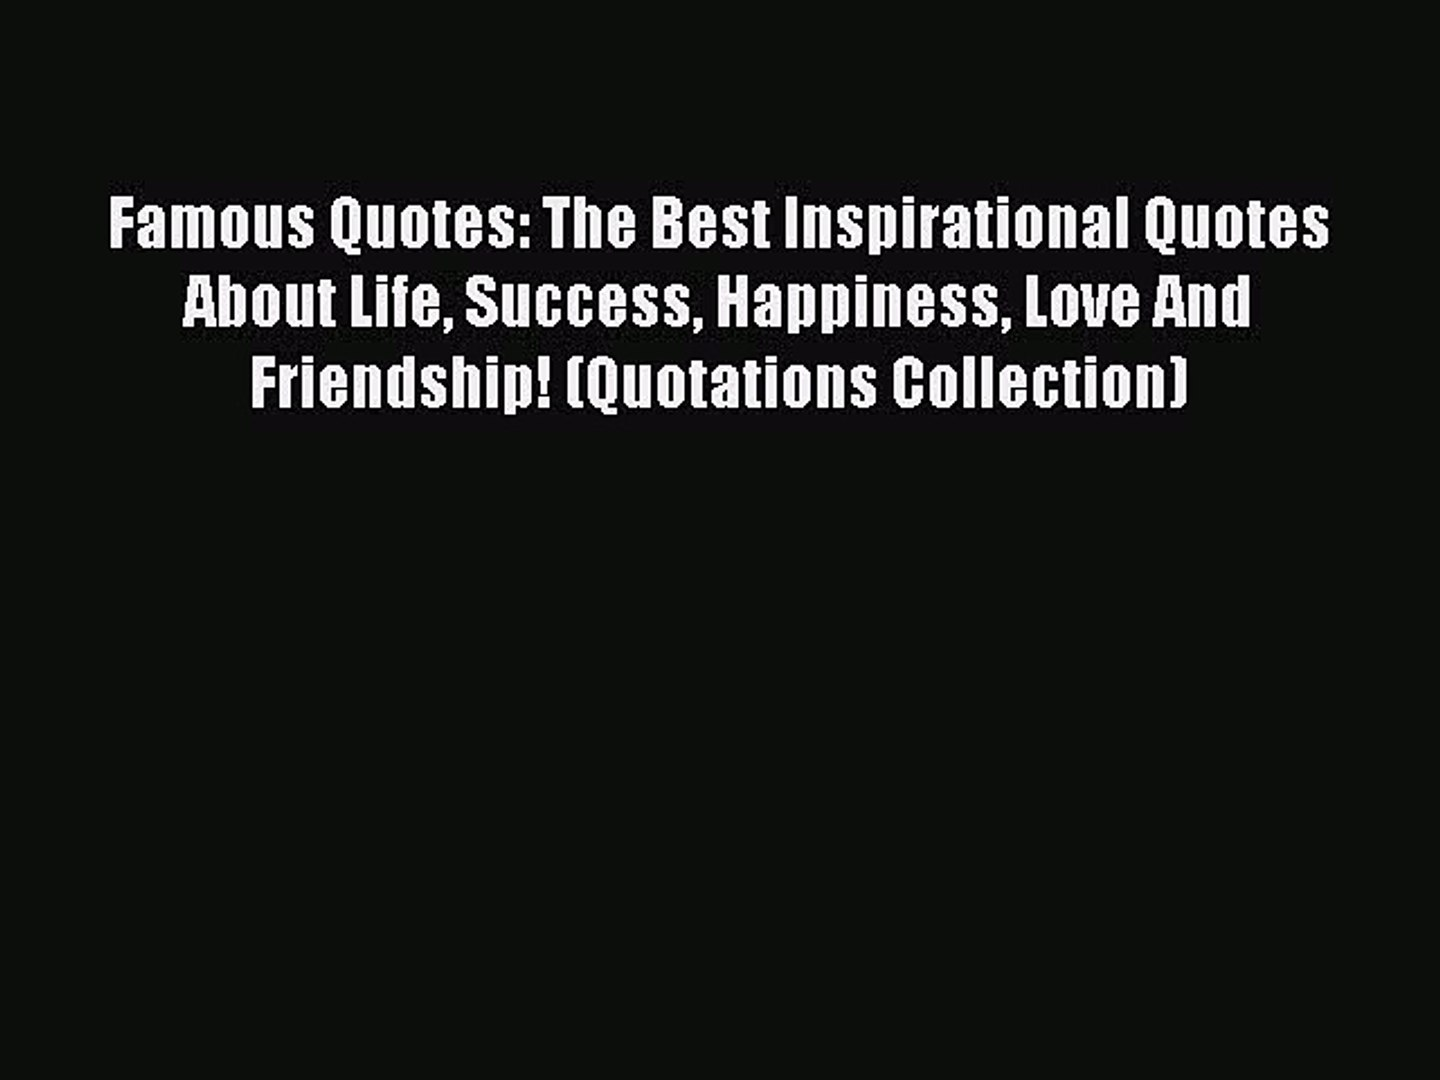 famous quotes the best inspirational quotes about life